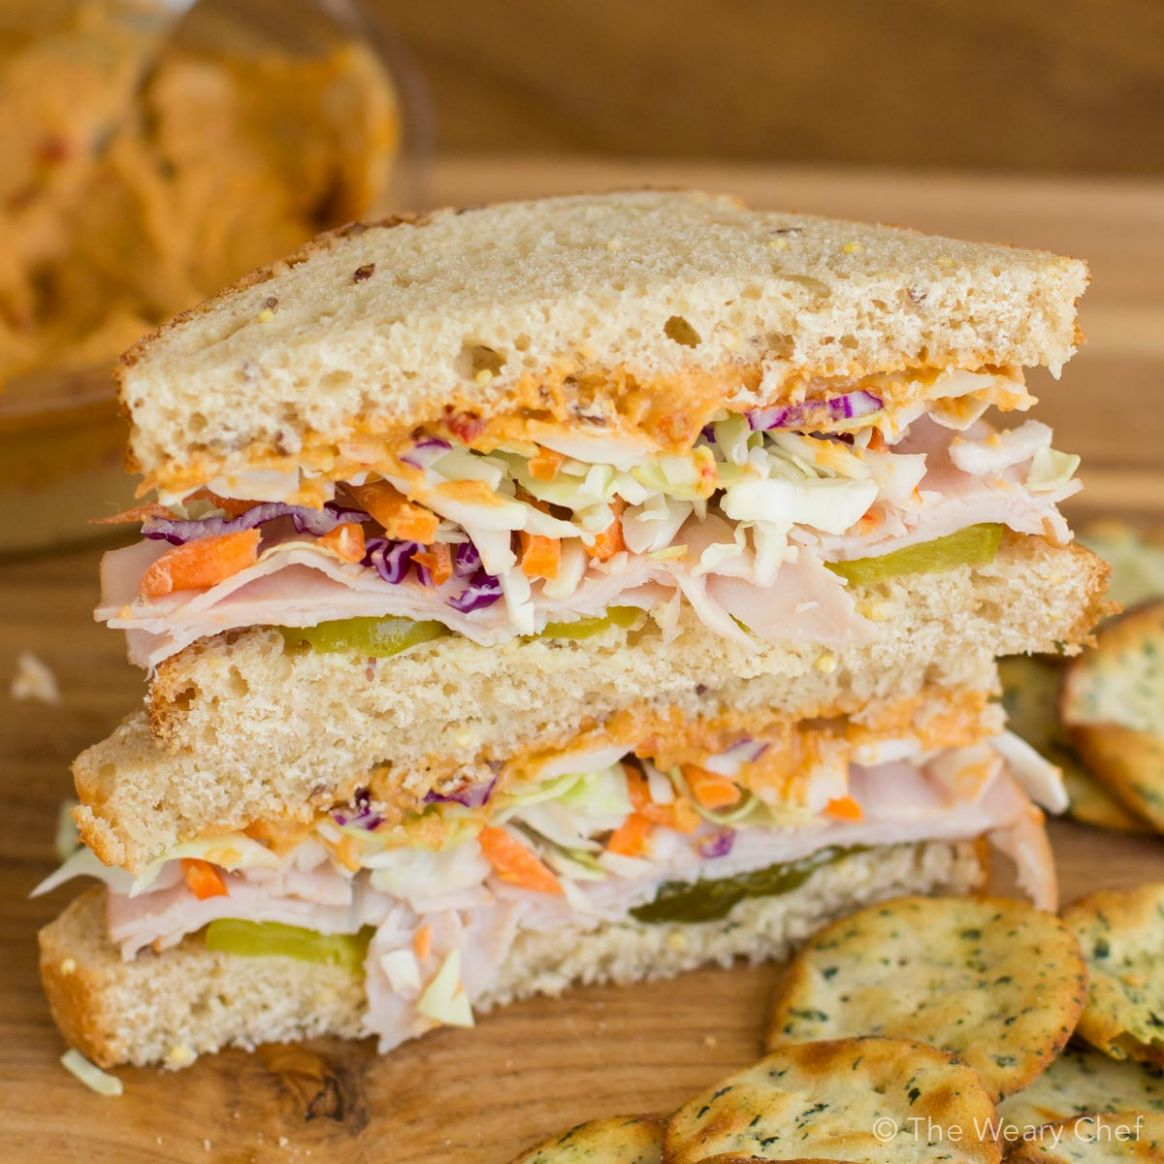 Crunchy Turkey Sandwich with Hummus - Sandwich Recipes Turkey